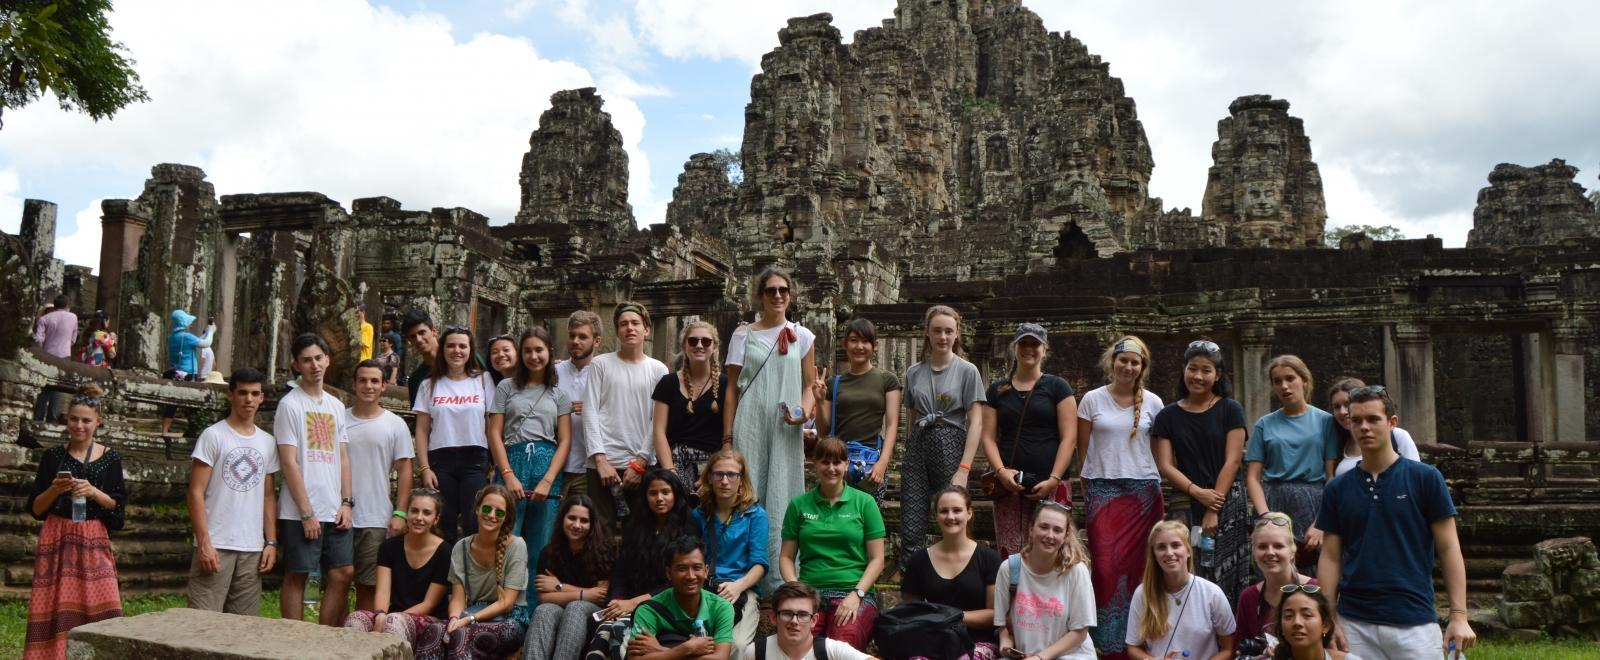 Projects Abroad staff take a group of school and college students on a temple tour during the weekend in Cambodia, Asia.